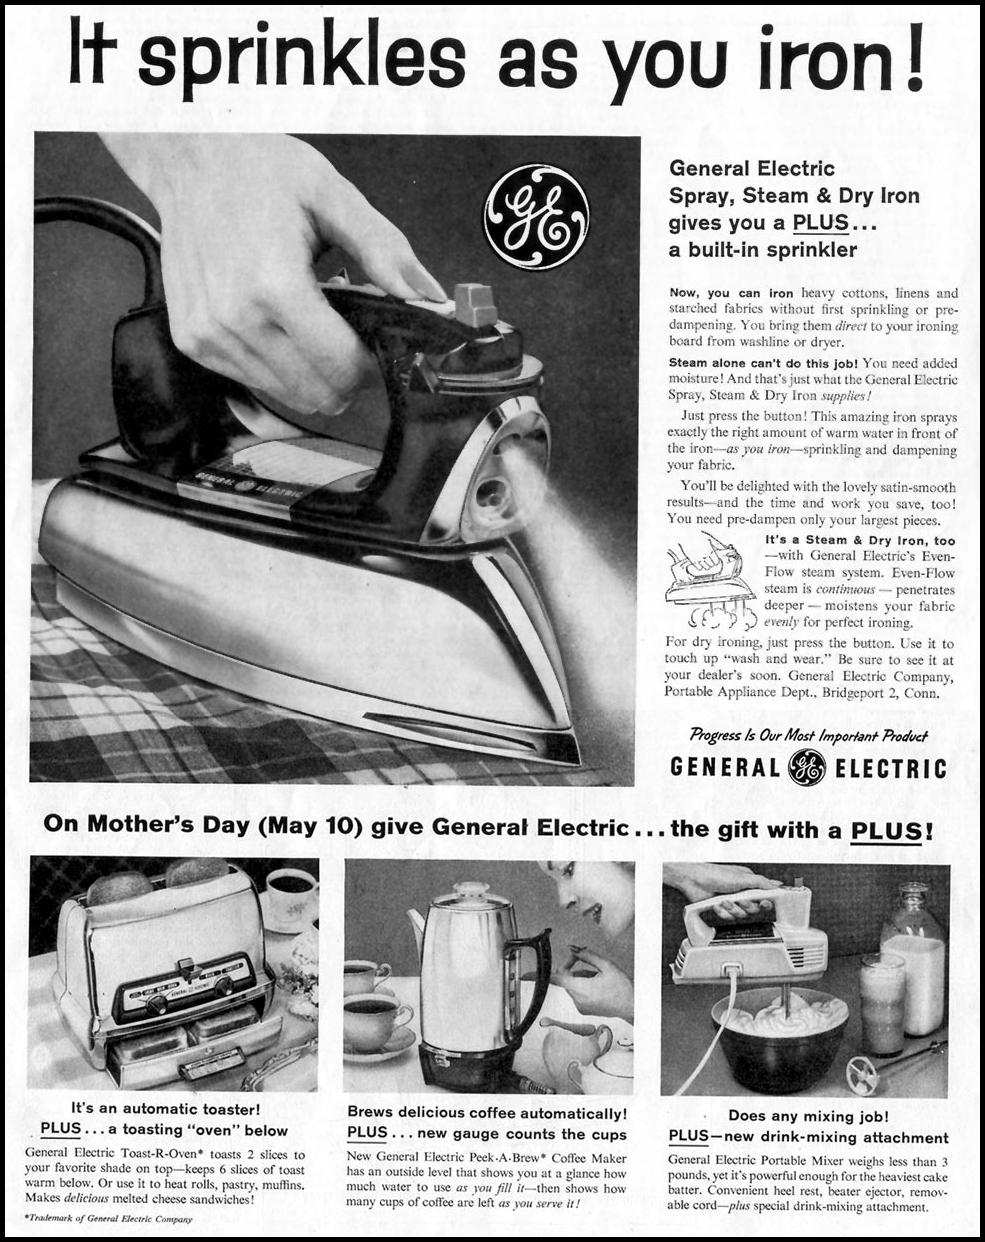 G. E. SPRAY, STEAM & DRY IRON